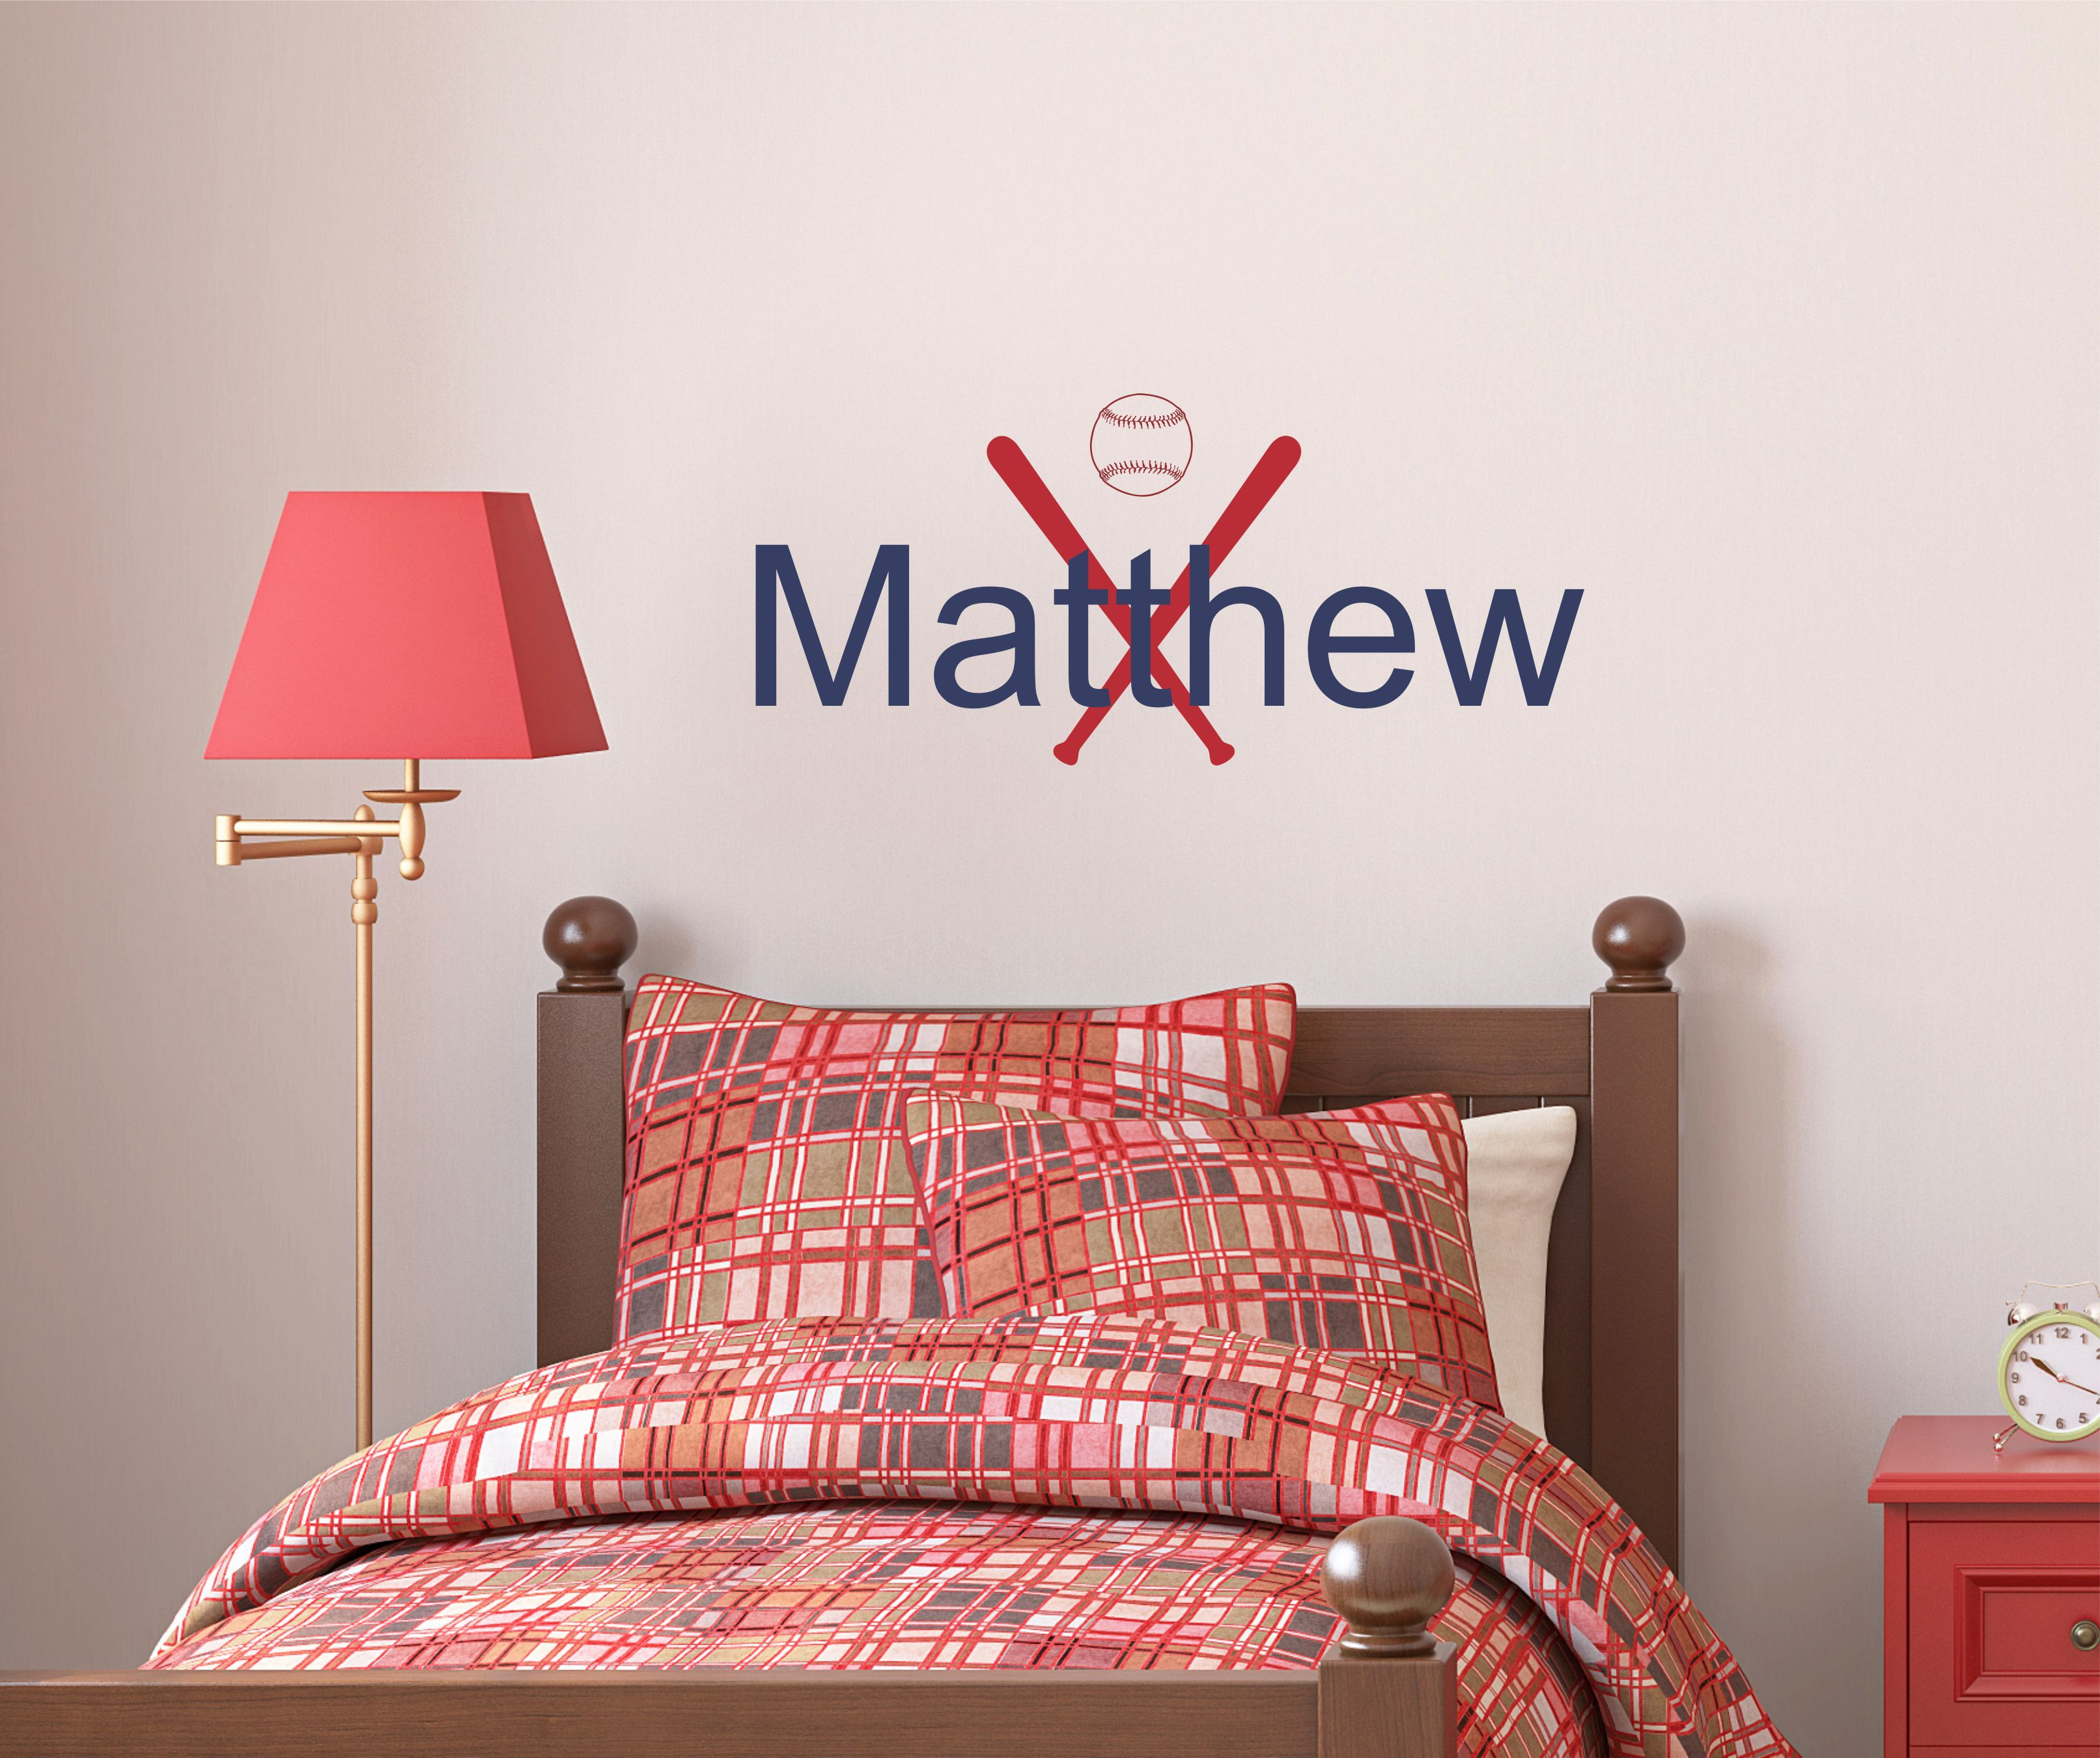 Personalized Baseball Wall Decal Available At My Etsy Shop:  Https://www.etsy.com/listing/251478779/baseball Personalized Name Wall Decal?refu003d  ...